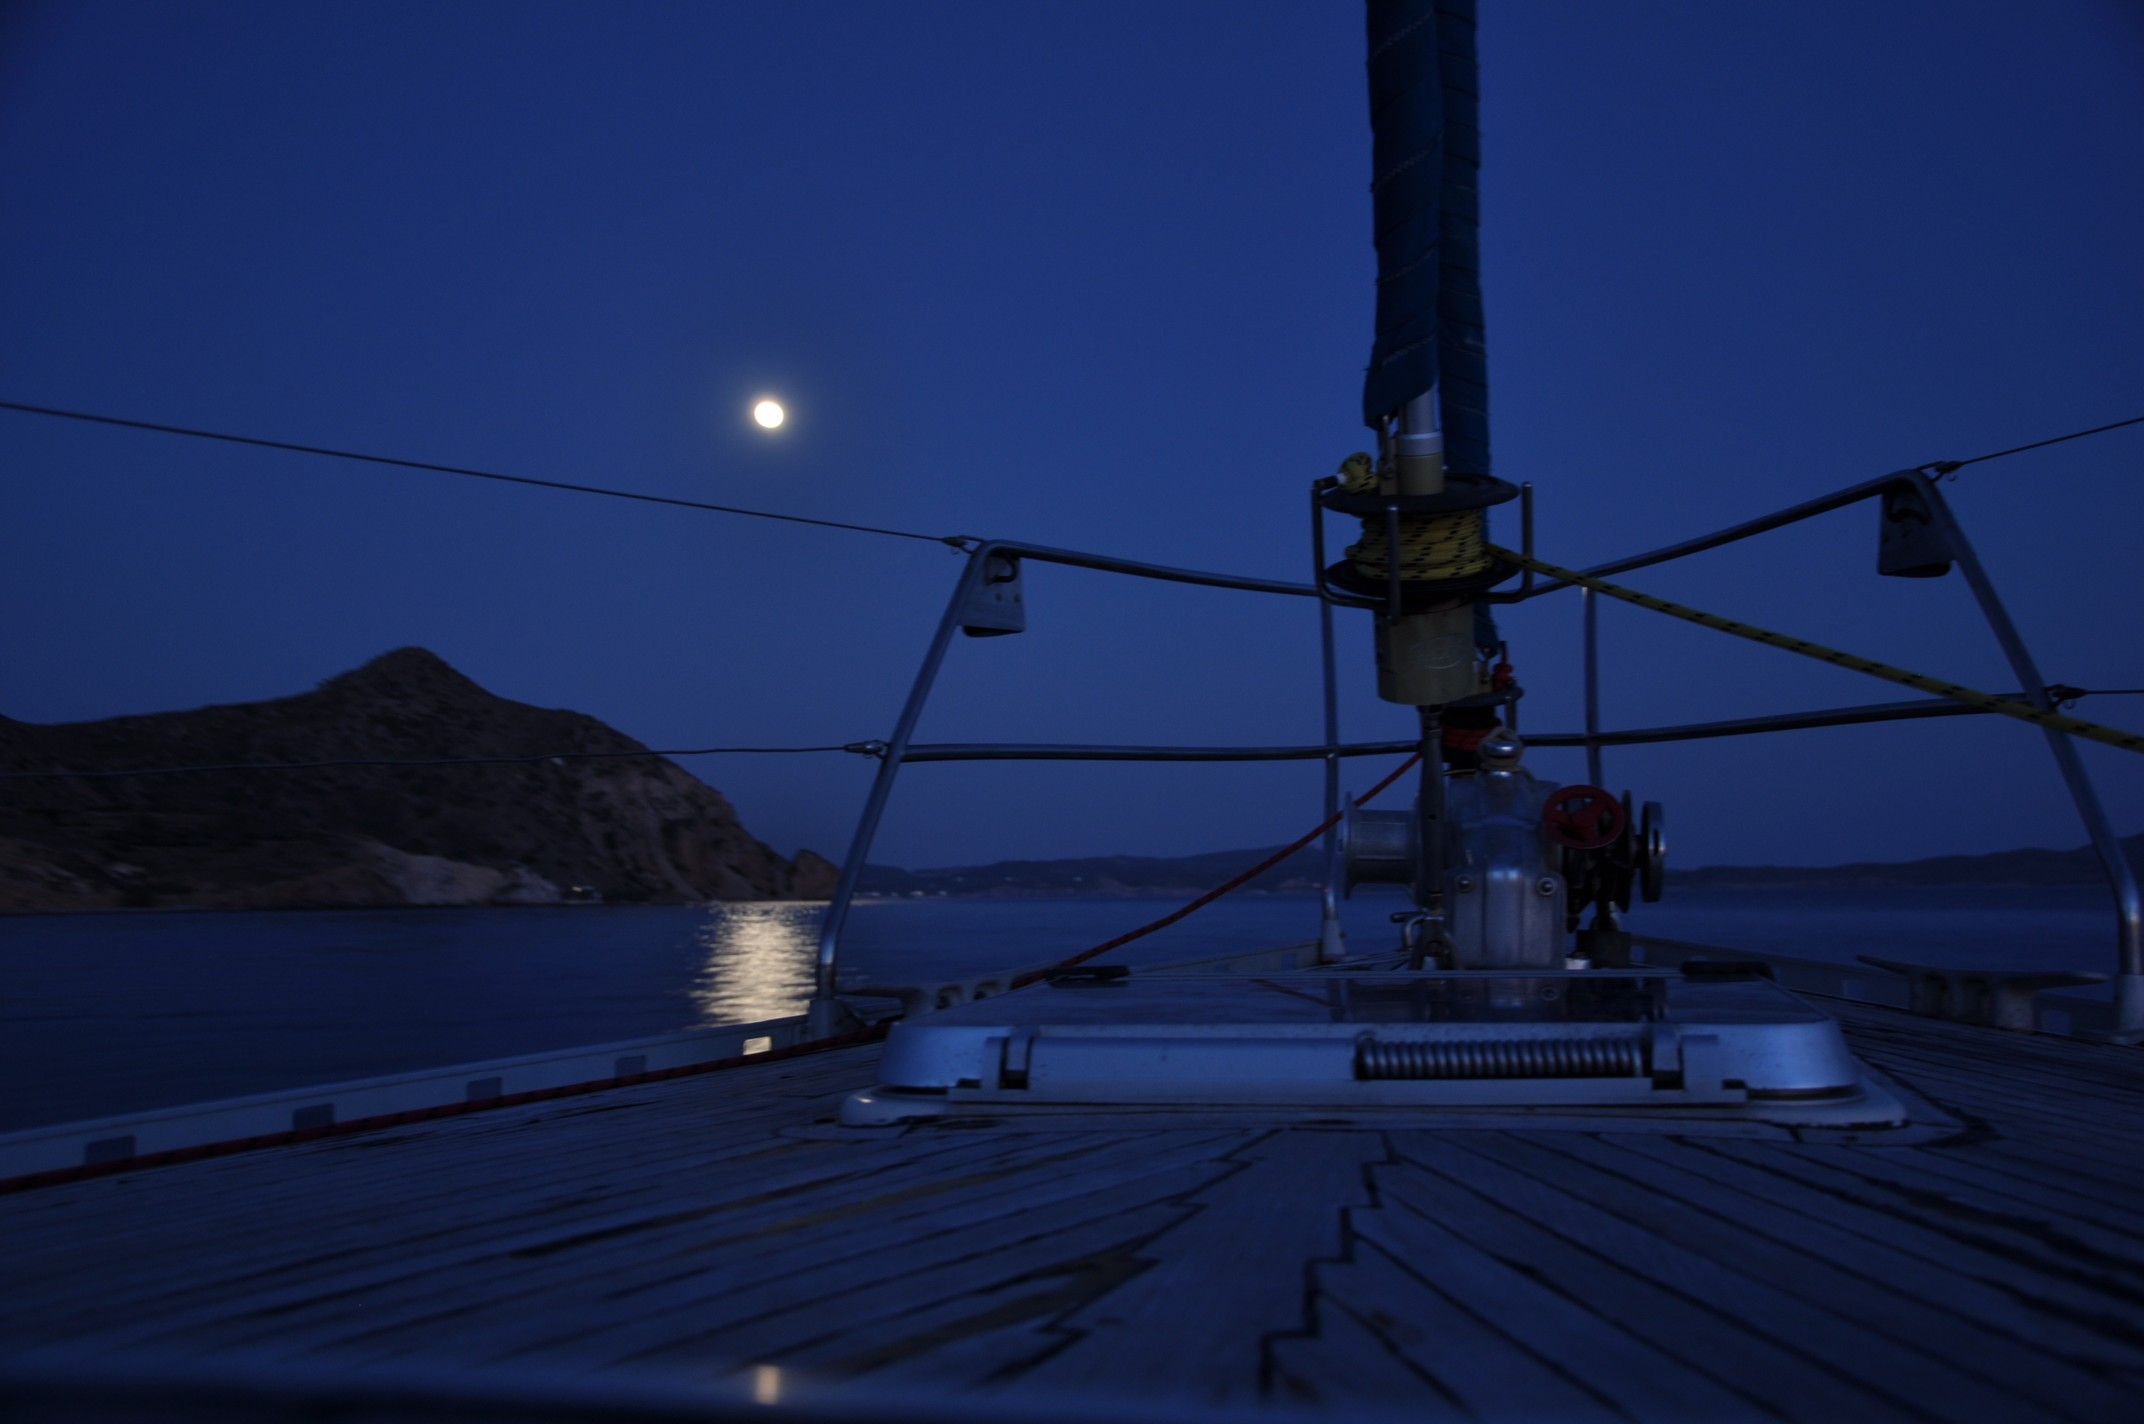 Romantic dinner on board a yacht under the nightsky and moon